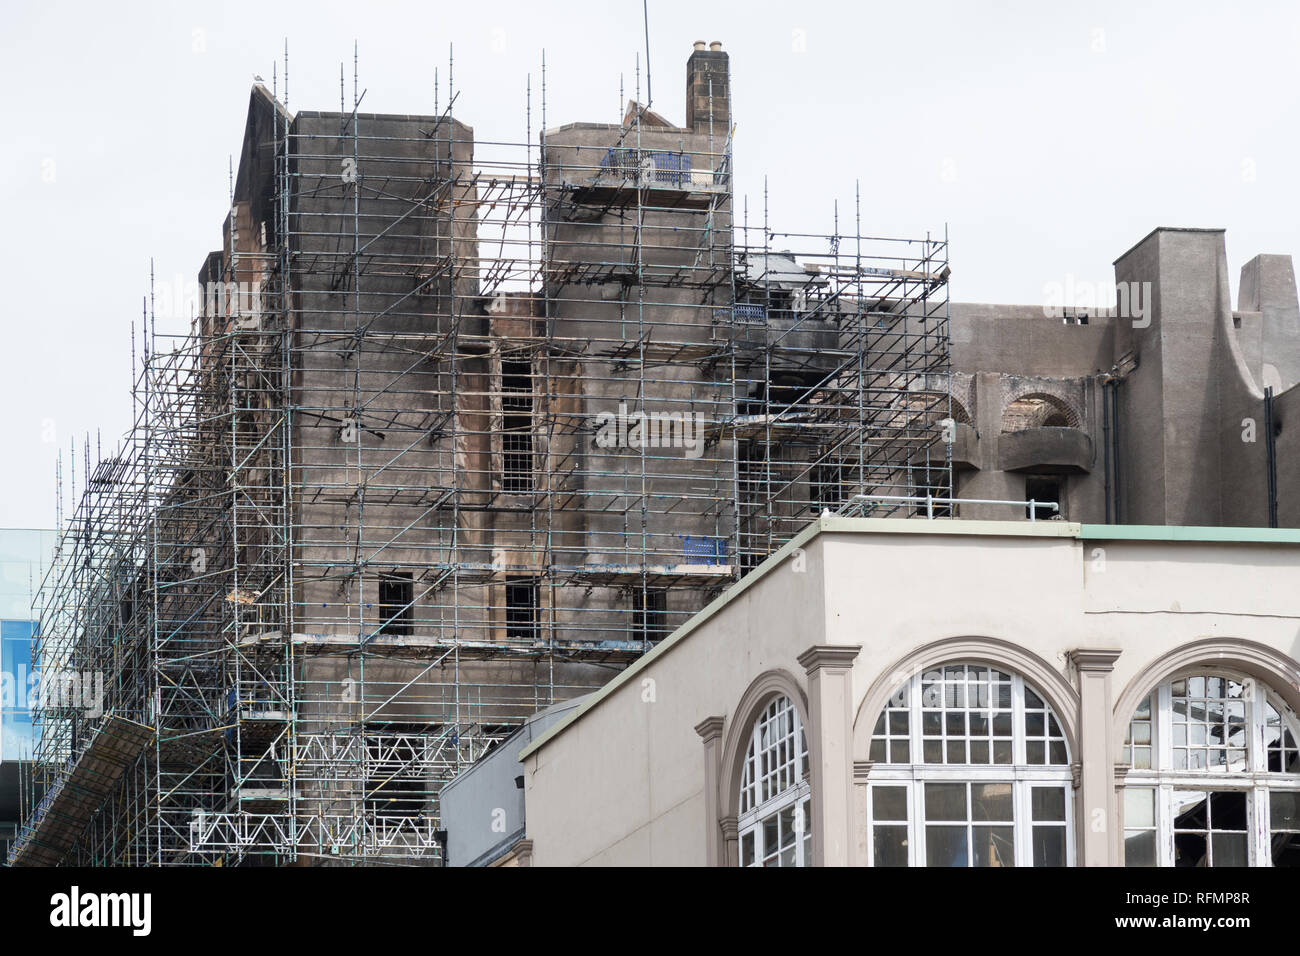 scaffolding around the Glasgow School of Art after the fire in 2018, Scotland, UK - Stock Image